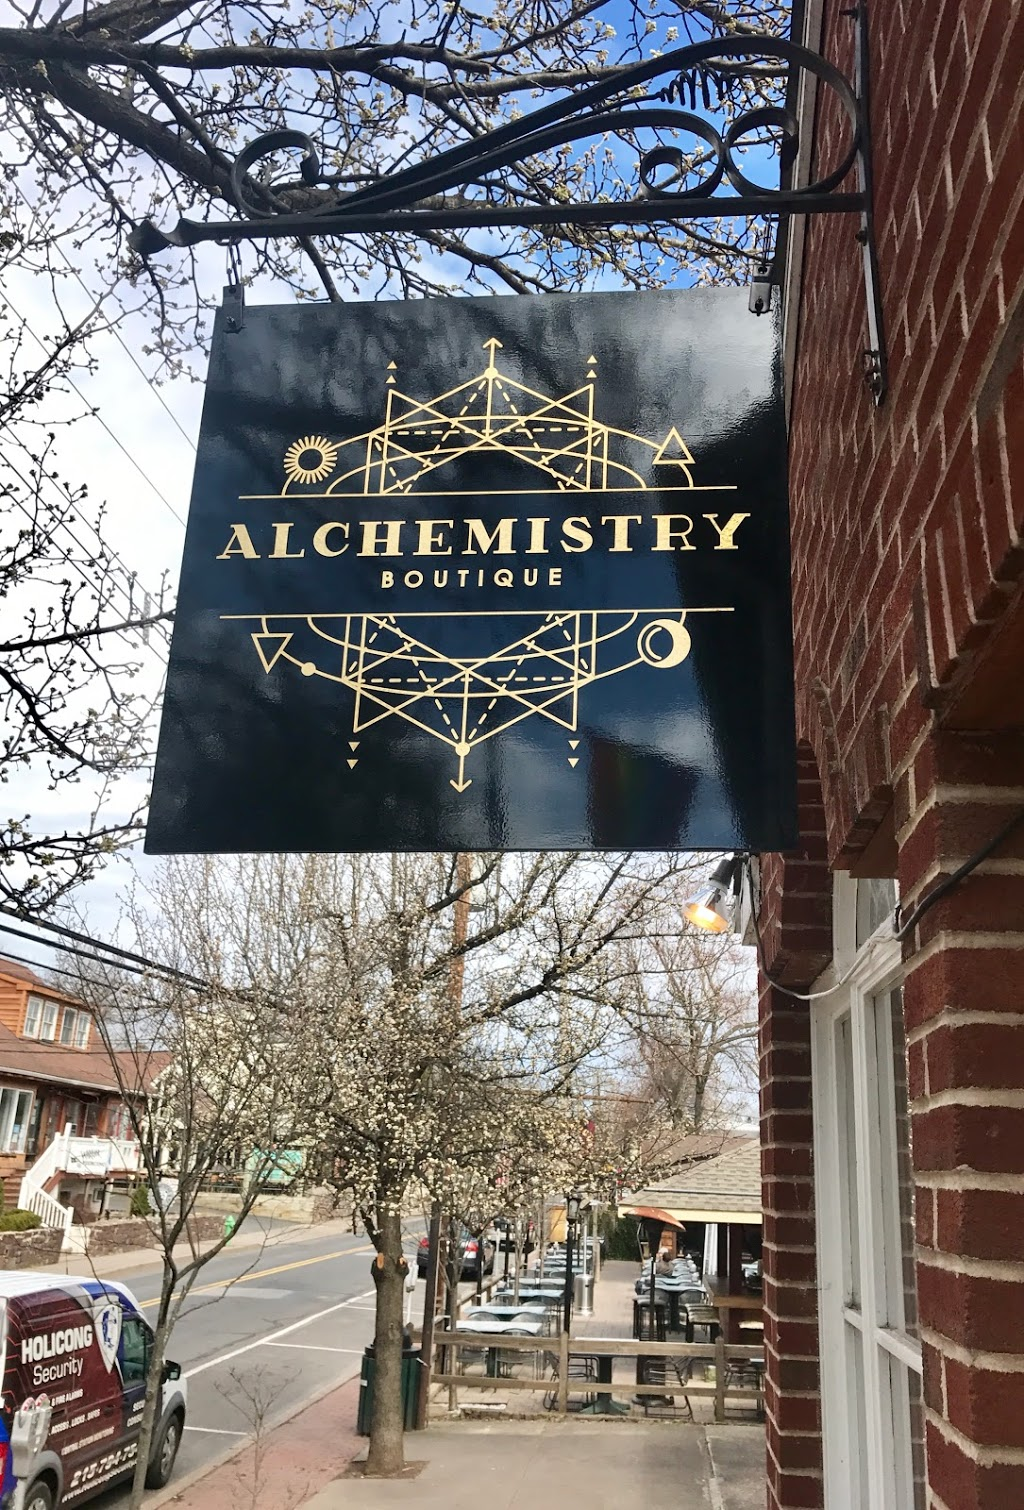 Alchemistry Boutique - clothing store  | Photo 9 of 10 | Address: 124 S Main St, New Hope, PA 18938, USA | Phone: (215) 693-1856